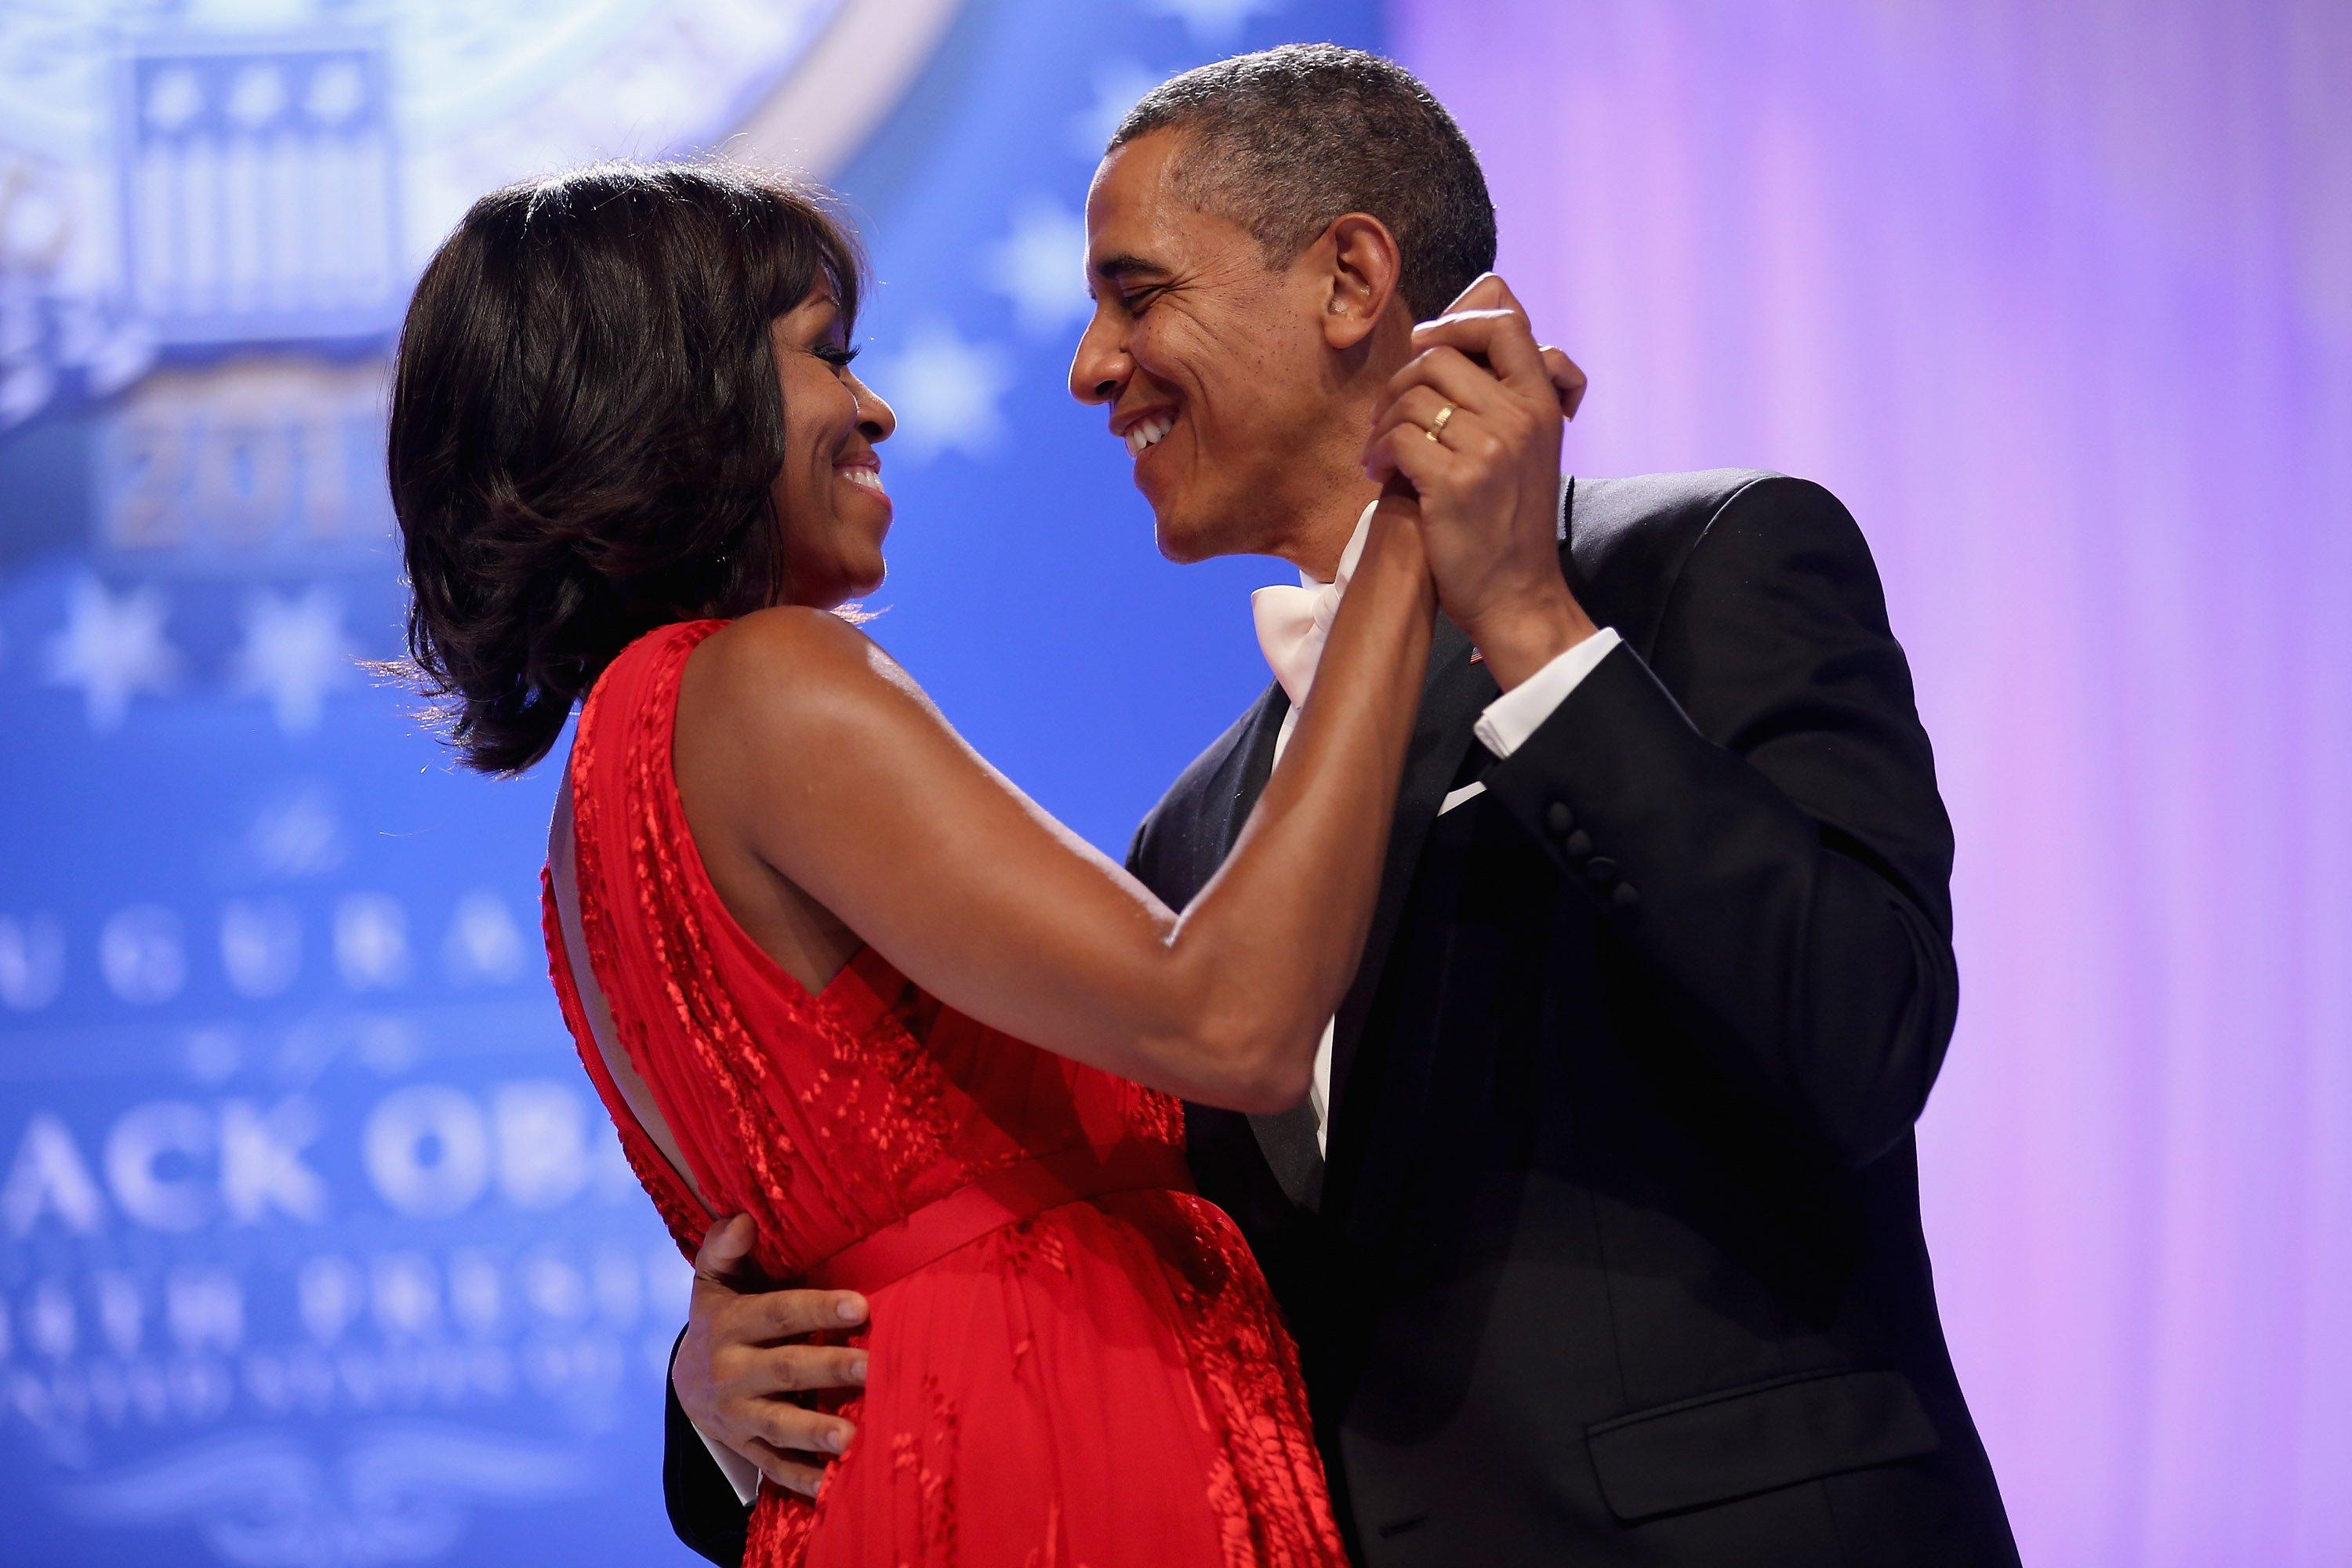 Image Source: Getty Images/Barrack and Michelle dancing together